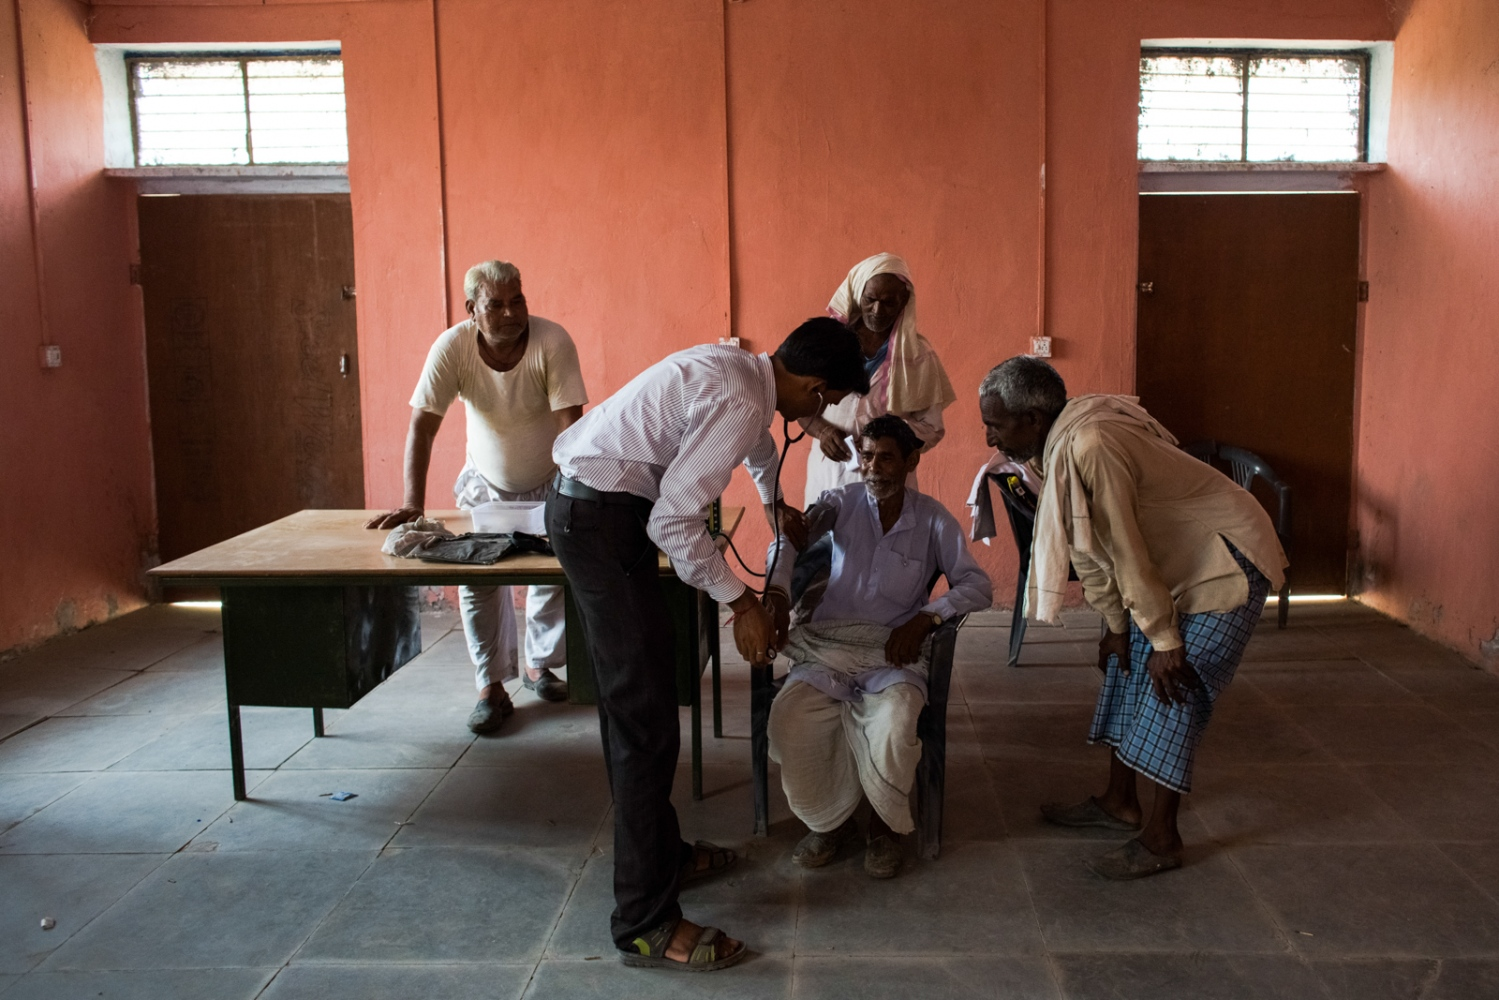 Art and Documentary Photography - Loading India-Shroff-Finals-6.jpg